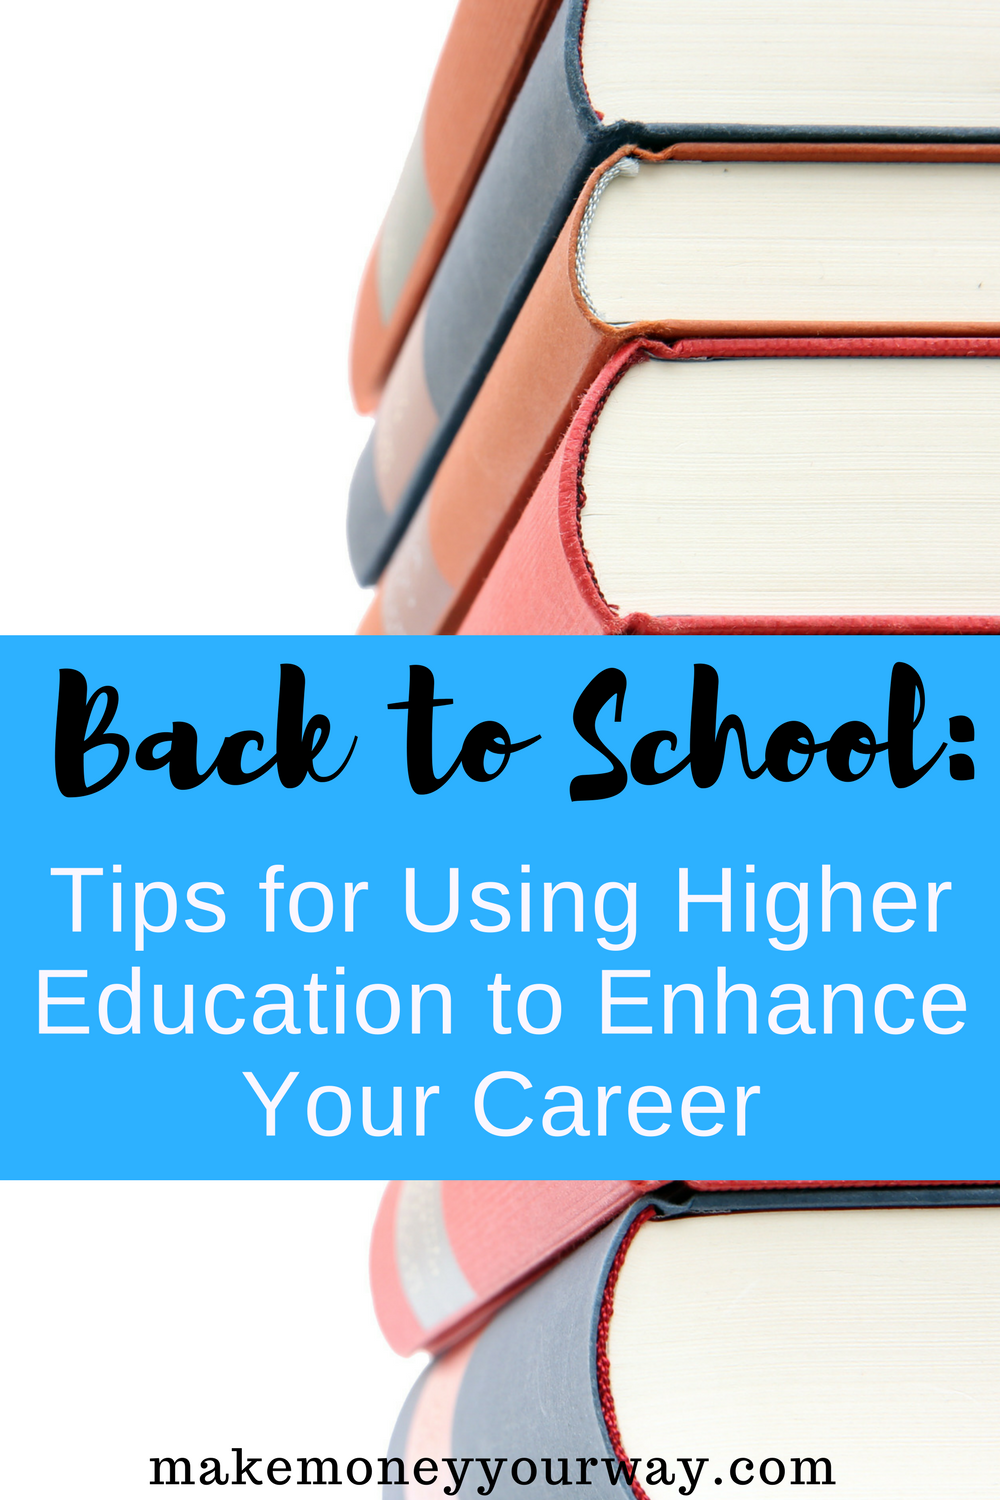 Back to School: Tips for Using Higher Education to Enhance Your Career